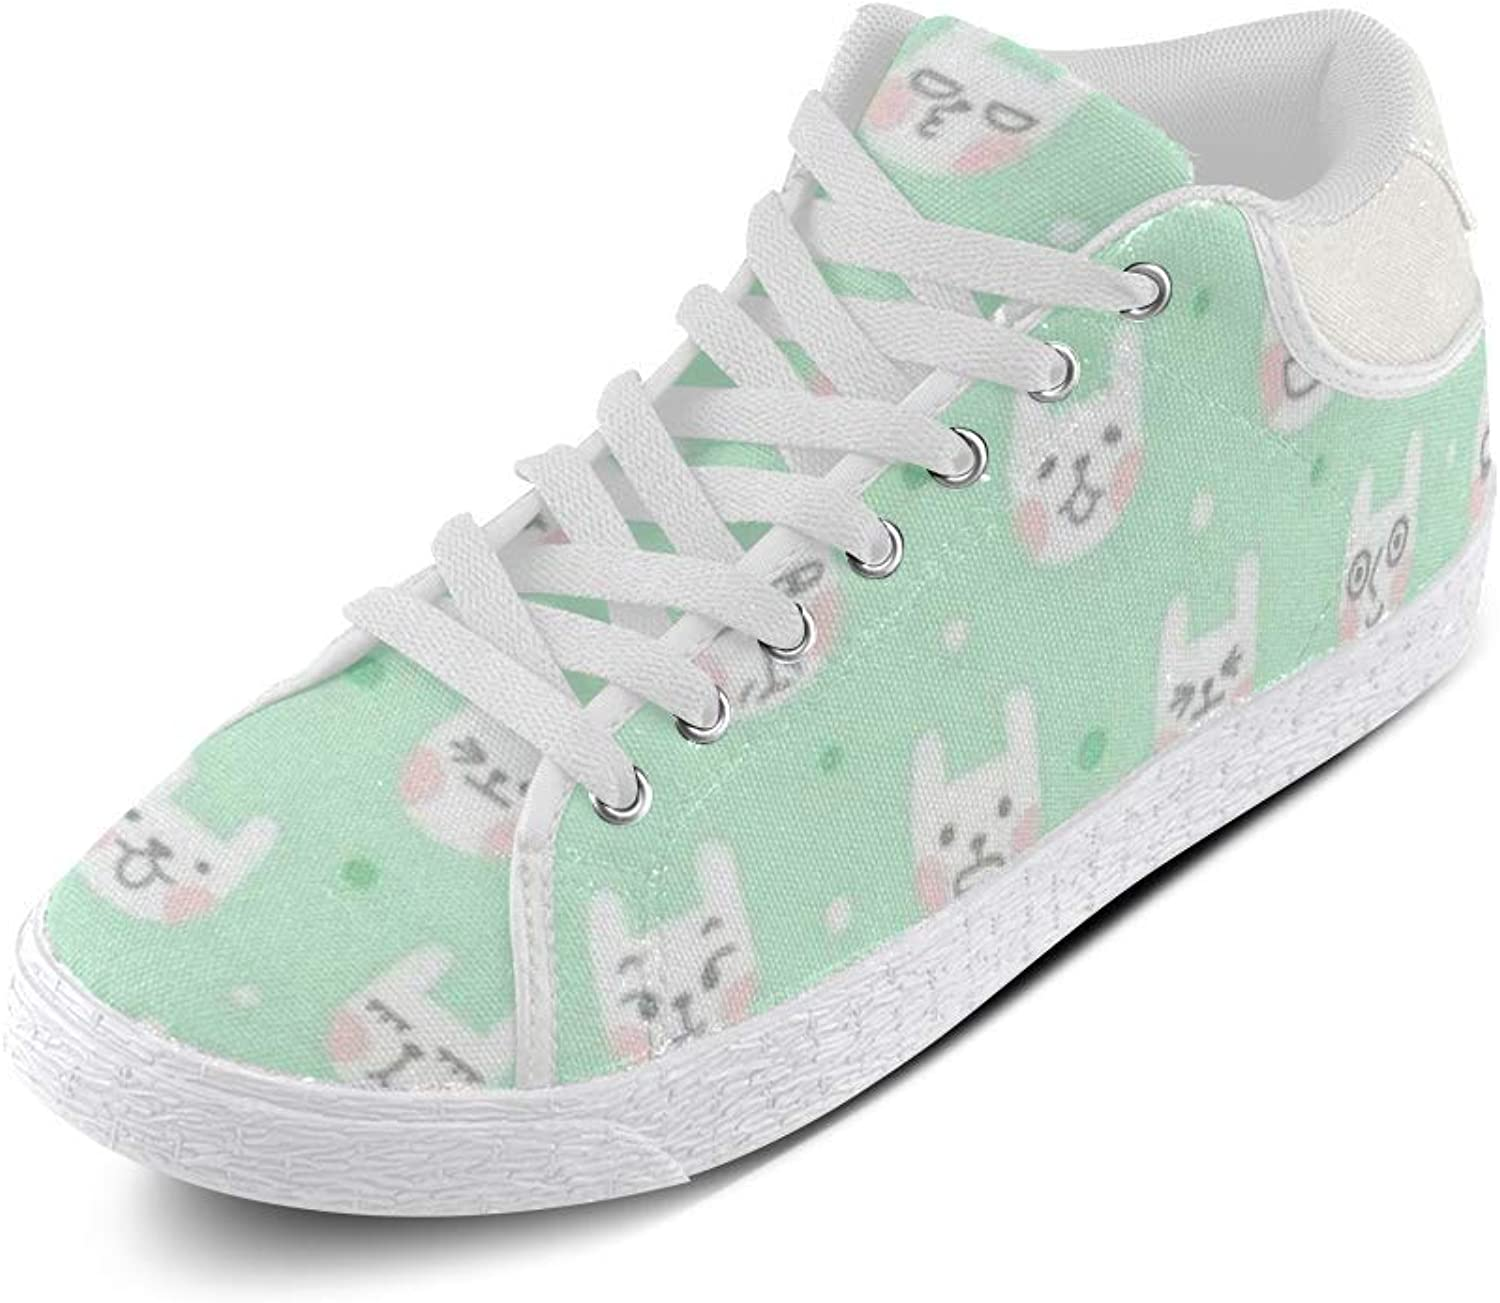 CERLYRUAN Cute Kitty Kitten Face Canvas Chukka Canvas Women's shoes